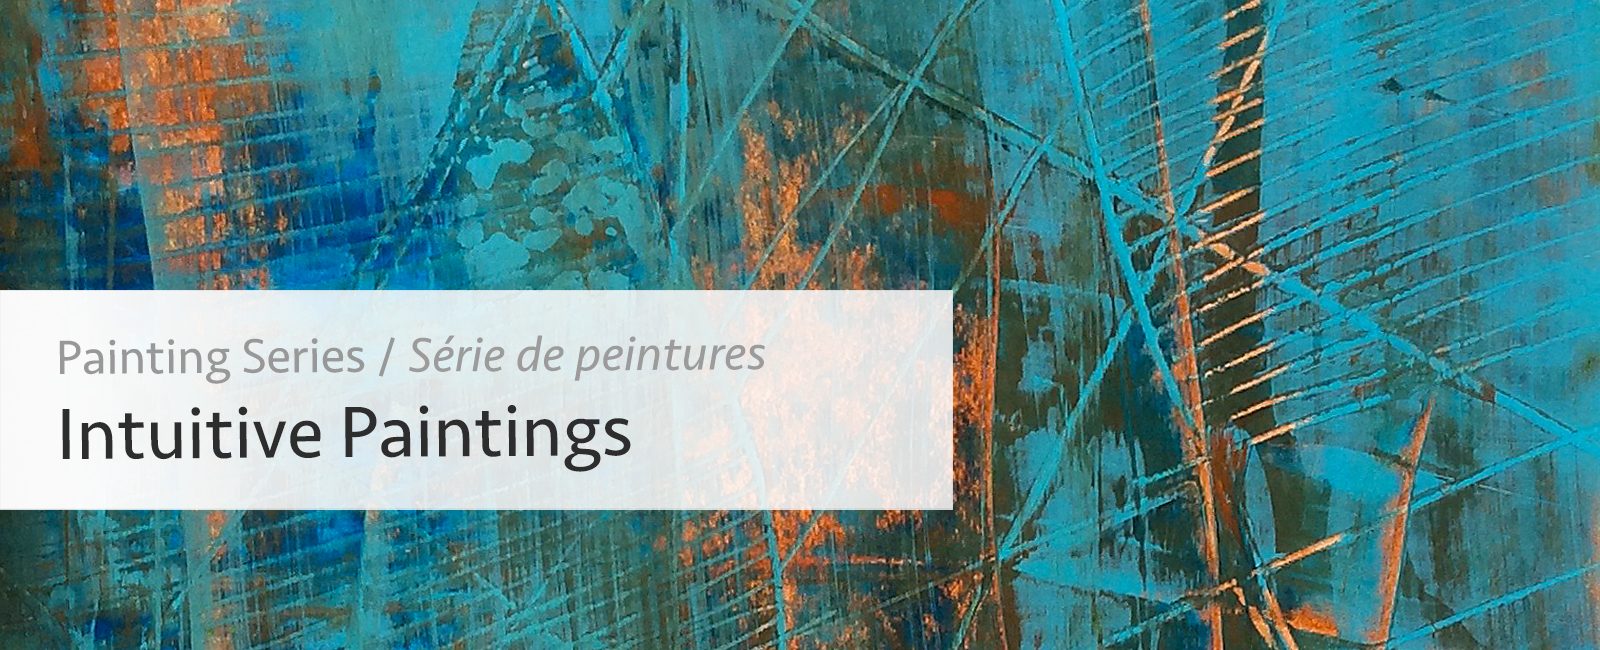 Recent Abstract Series Intuitive Paintings